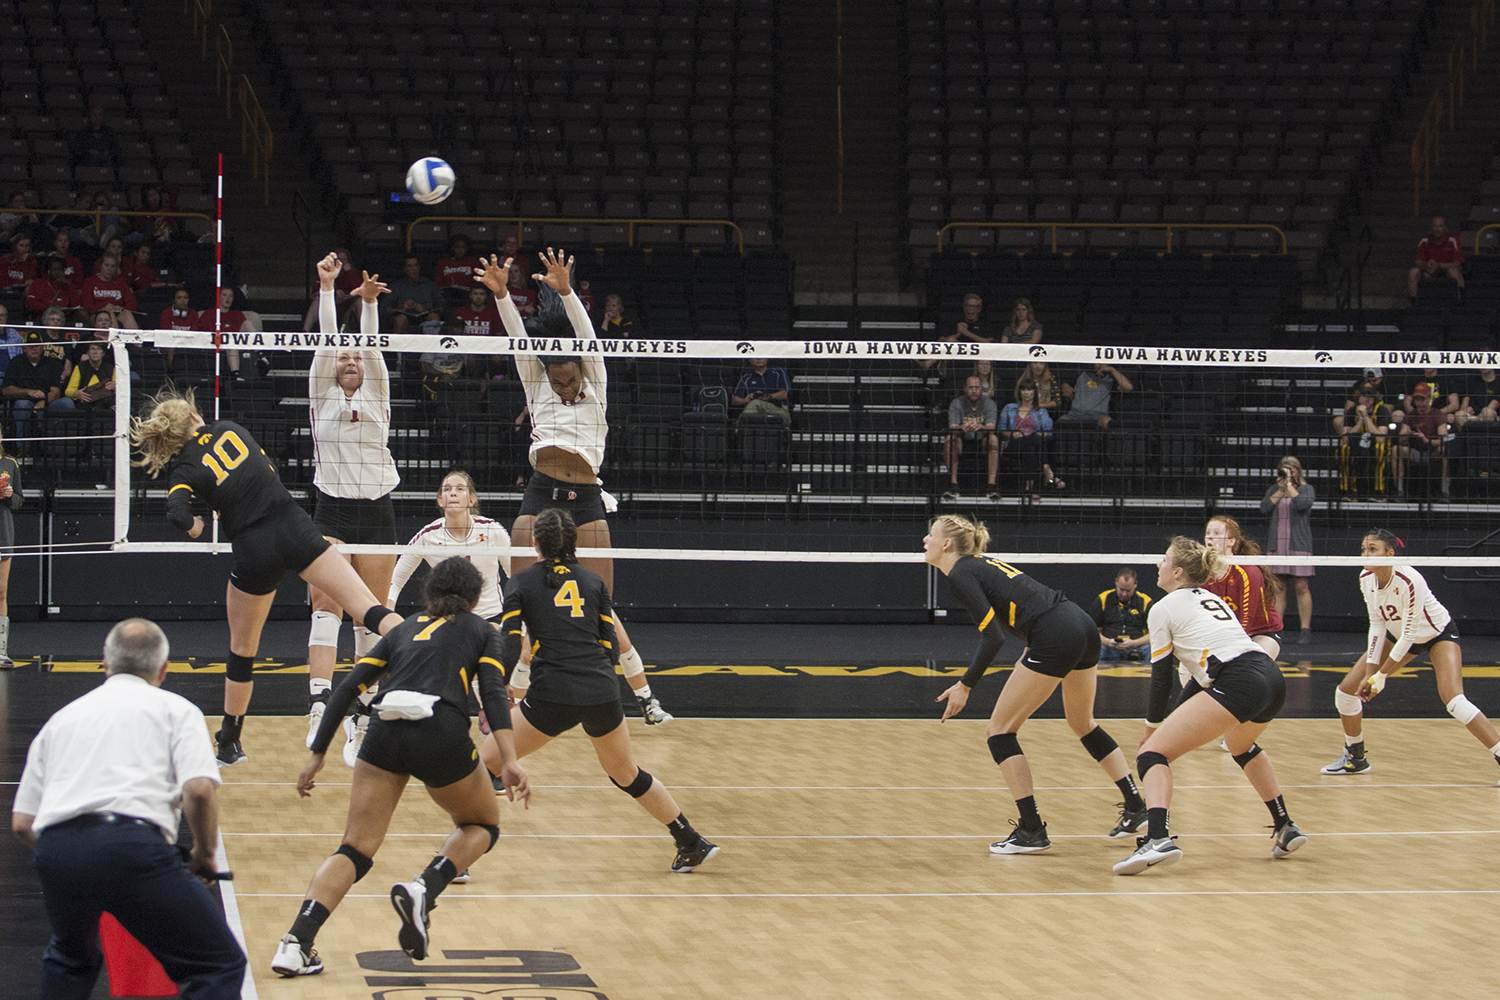 Iowa OH Claire Sheehan attacks the ball during the match between Iowa and Iowa State inside Carver-Hawkeye Arena on Friday, September 8, 2017. The Hawkeyes fell to the Cyclones 3-1. (Shivansh Ahuja/The Daily Iowan)